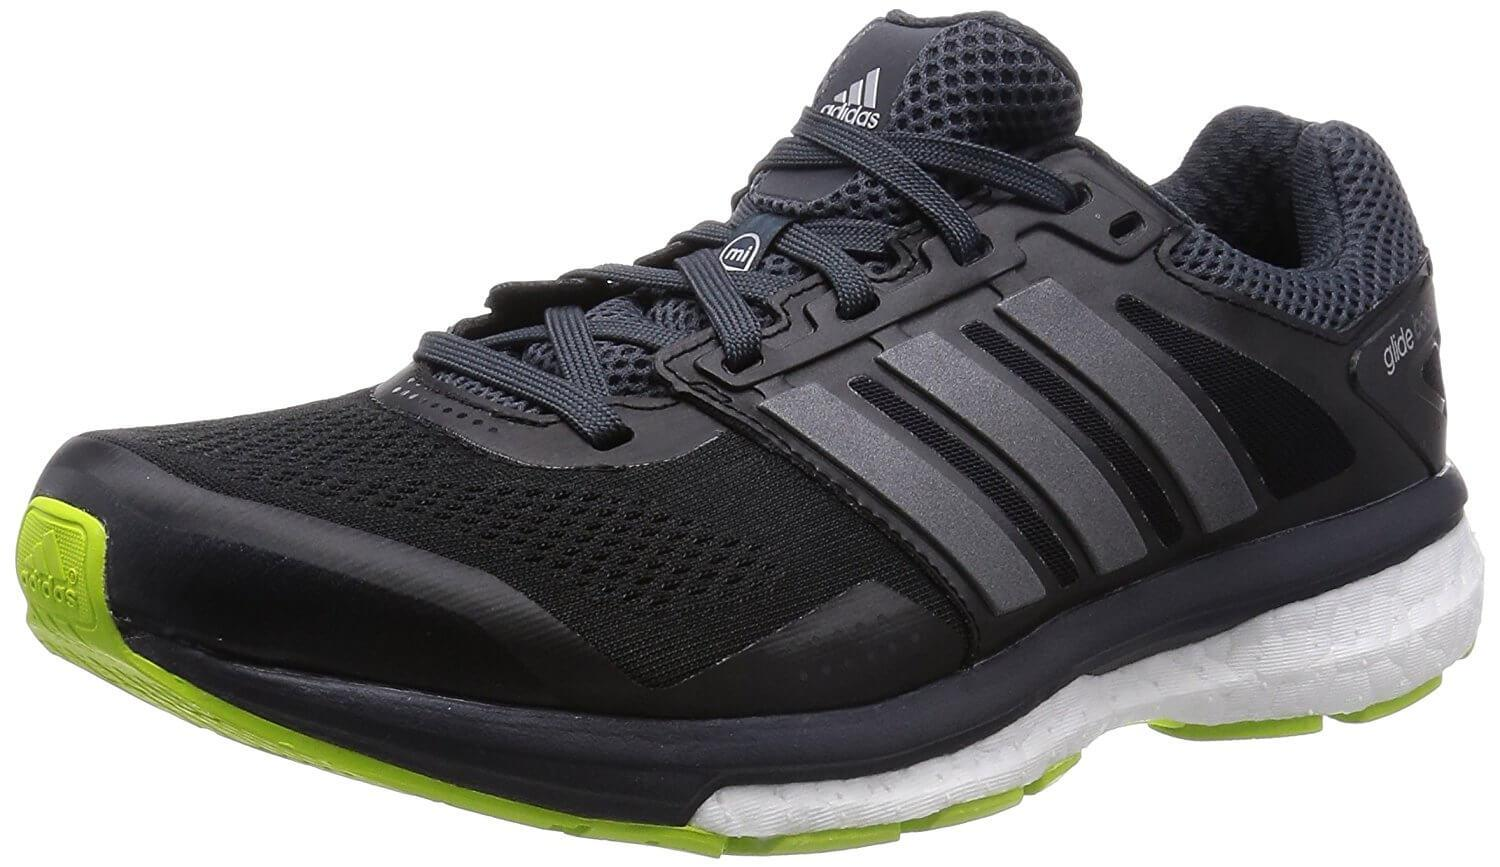 Adidas Supernova Glide Boost 7 - Buy or Not in Mar 2019  defd62dd6